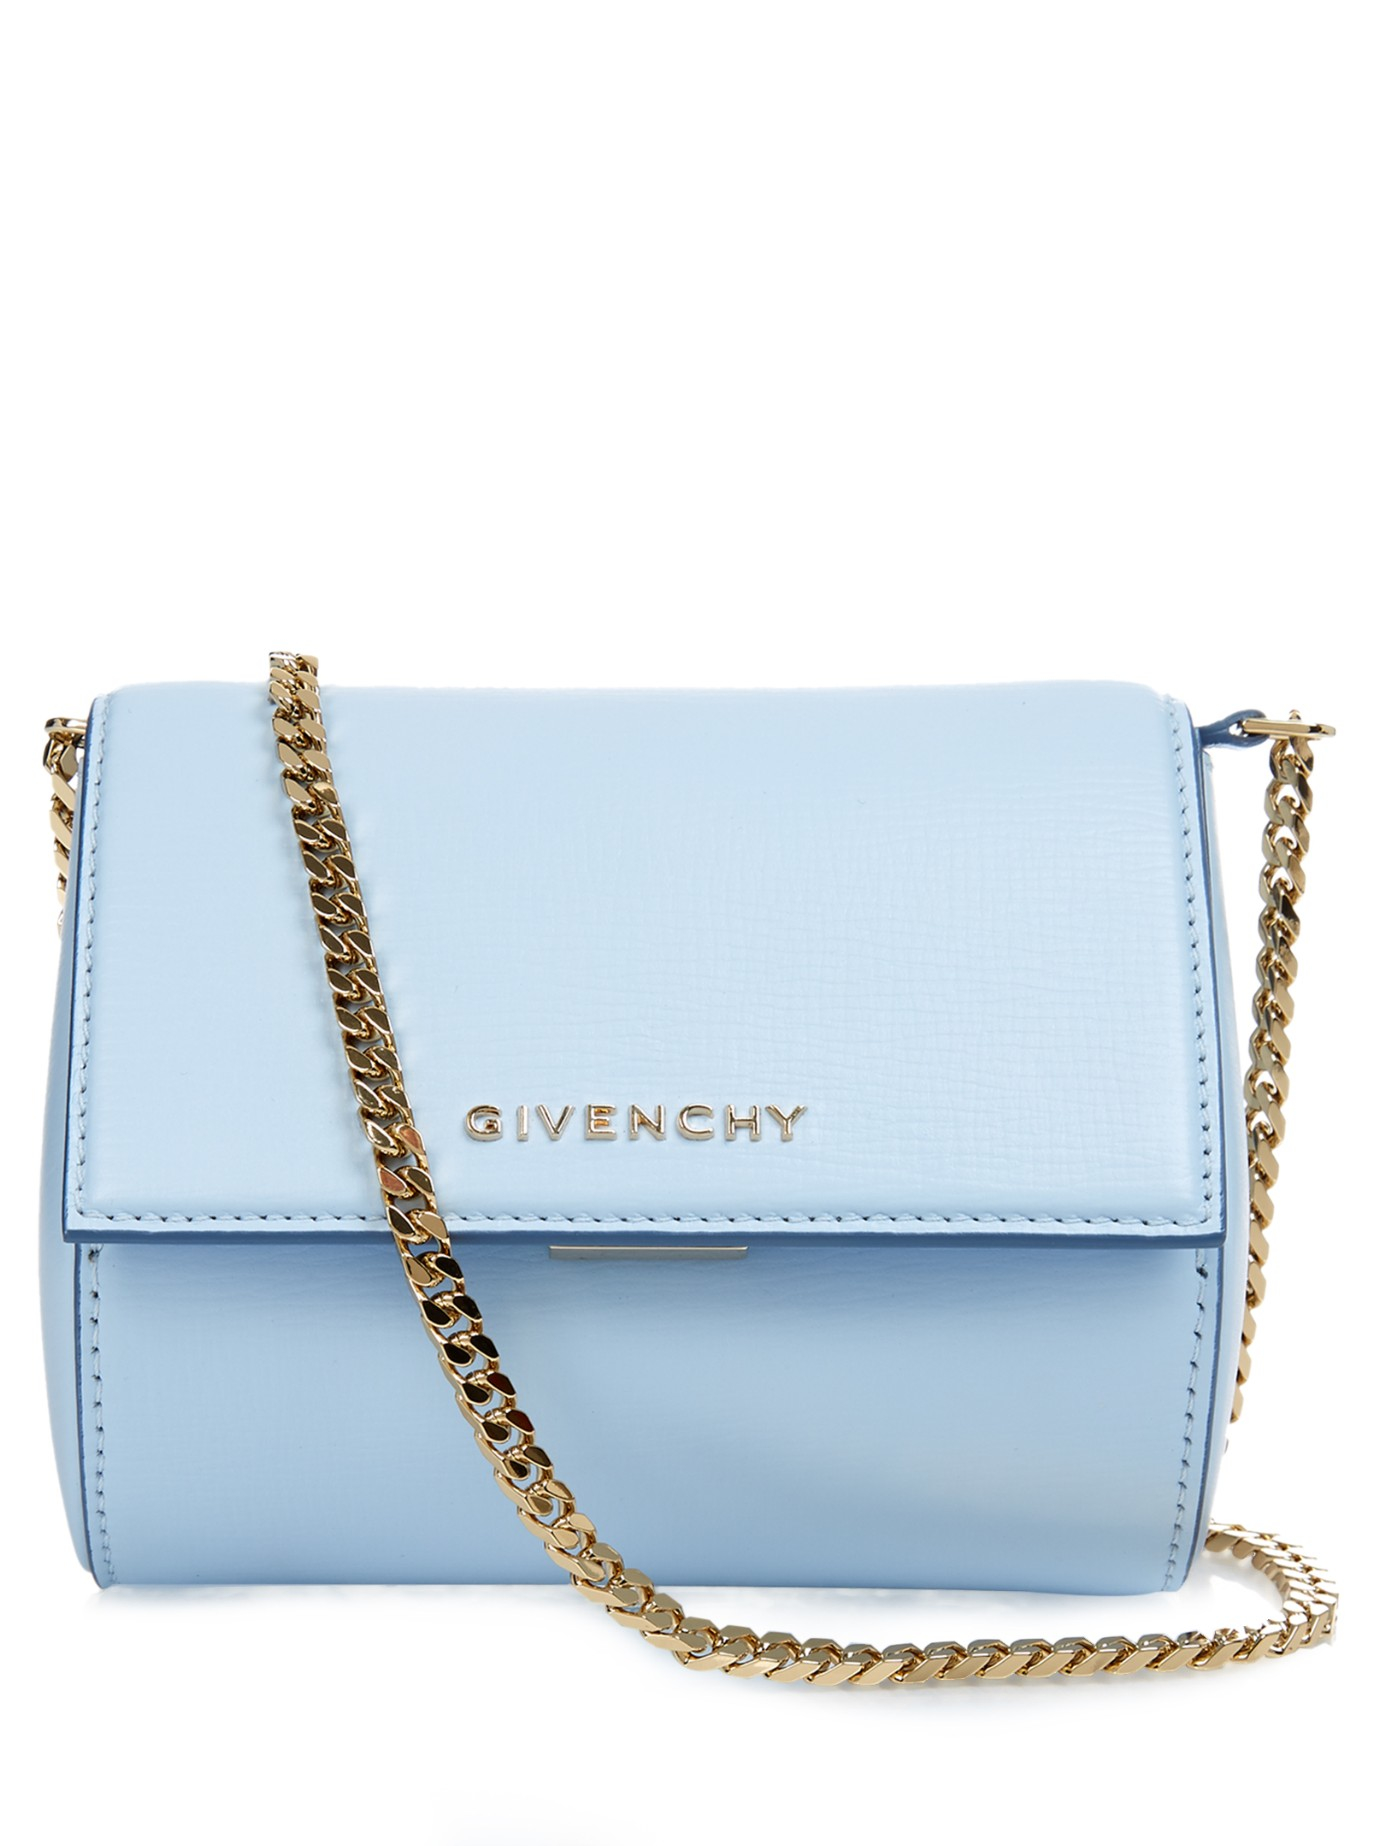 9d783e430ec5 Lyst - Givenchy Pandora Box Leather Cross-Body Bag in Blue